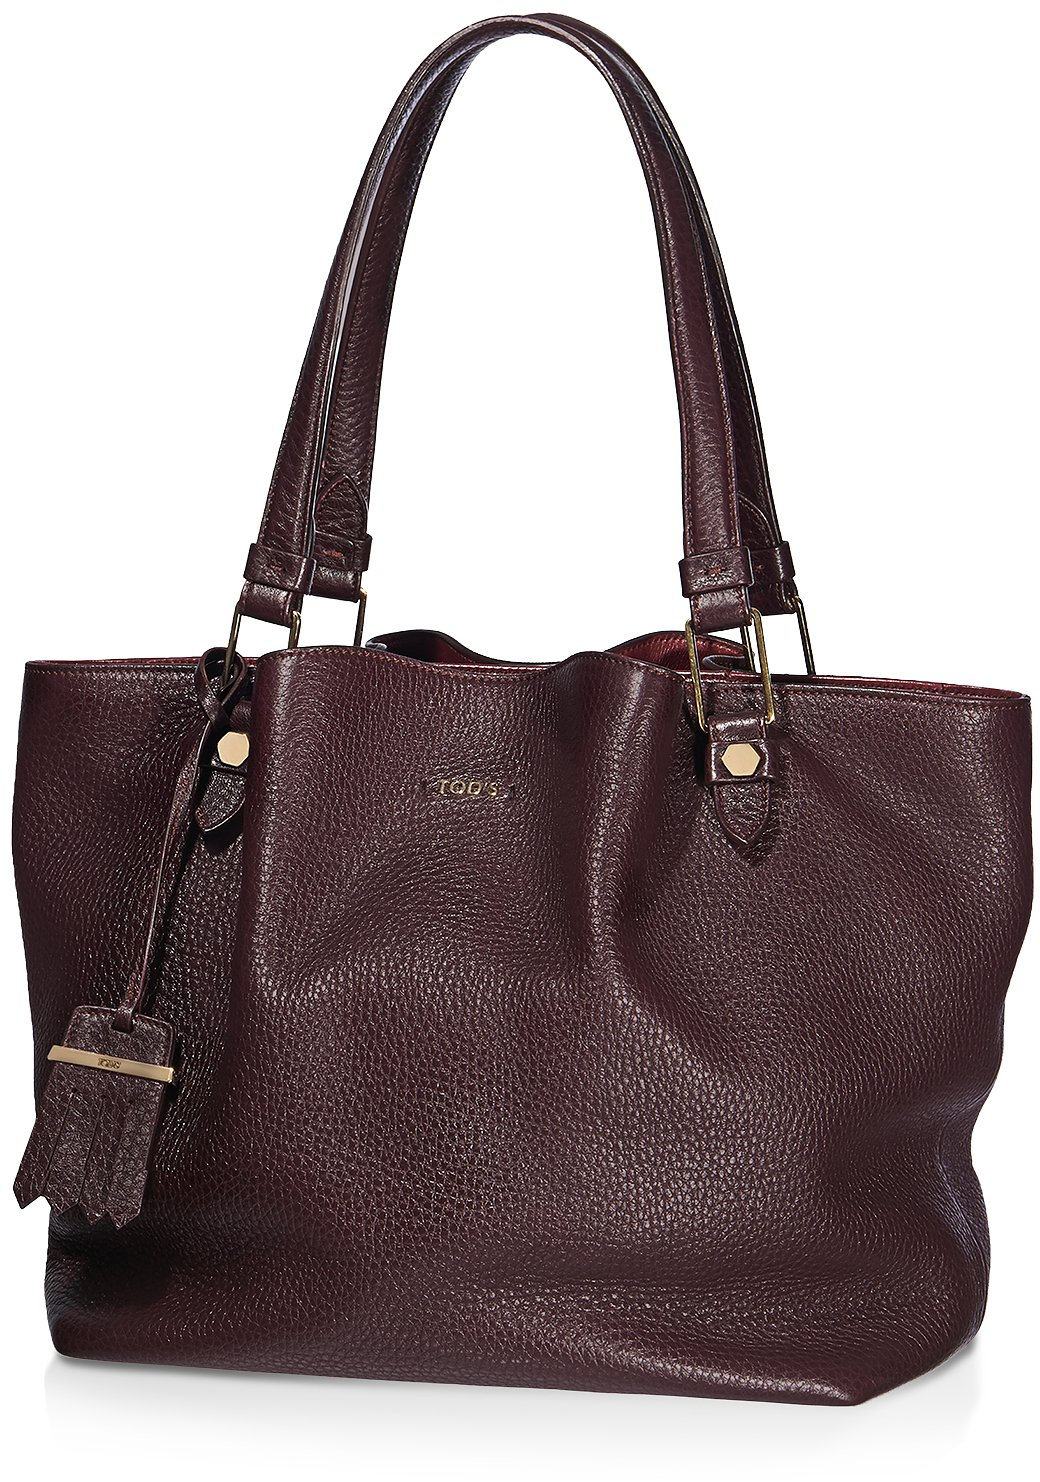 TodsMedium-Flower-Bag-brown